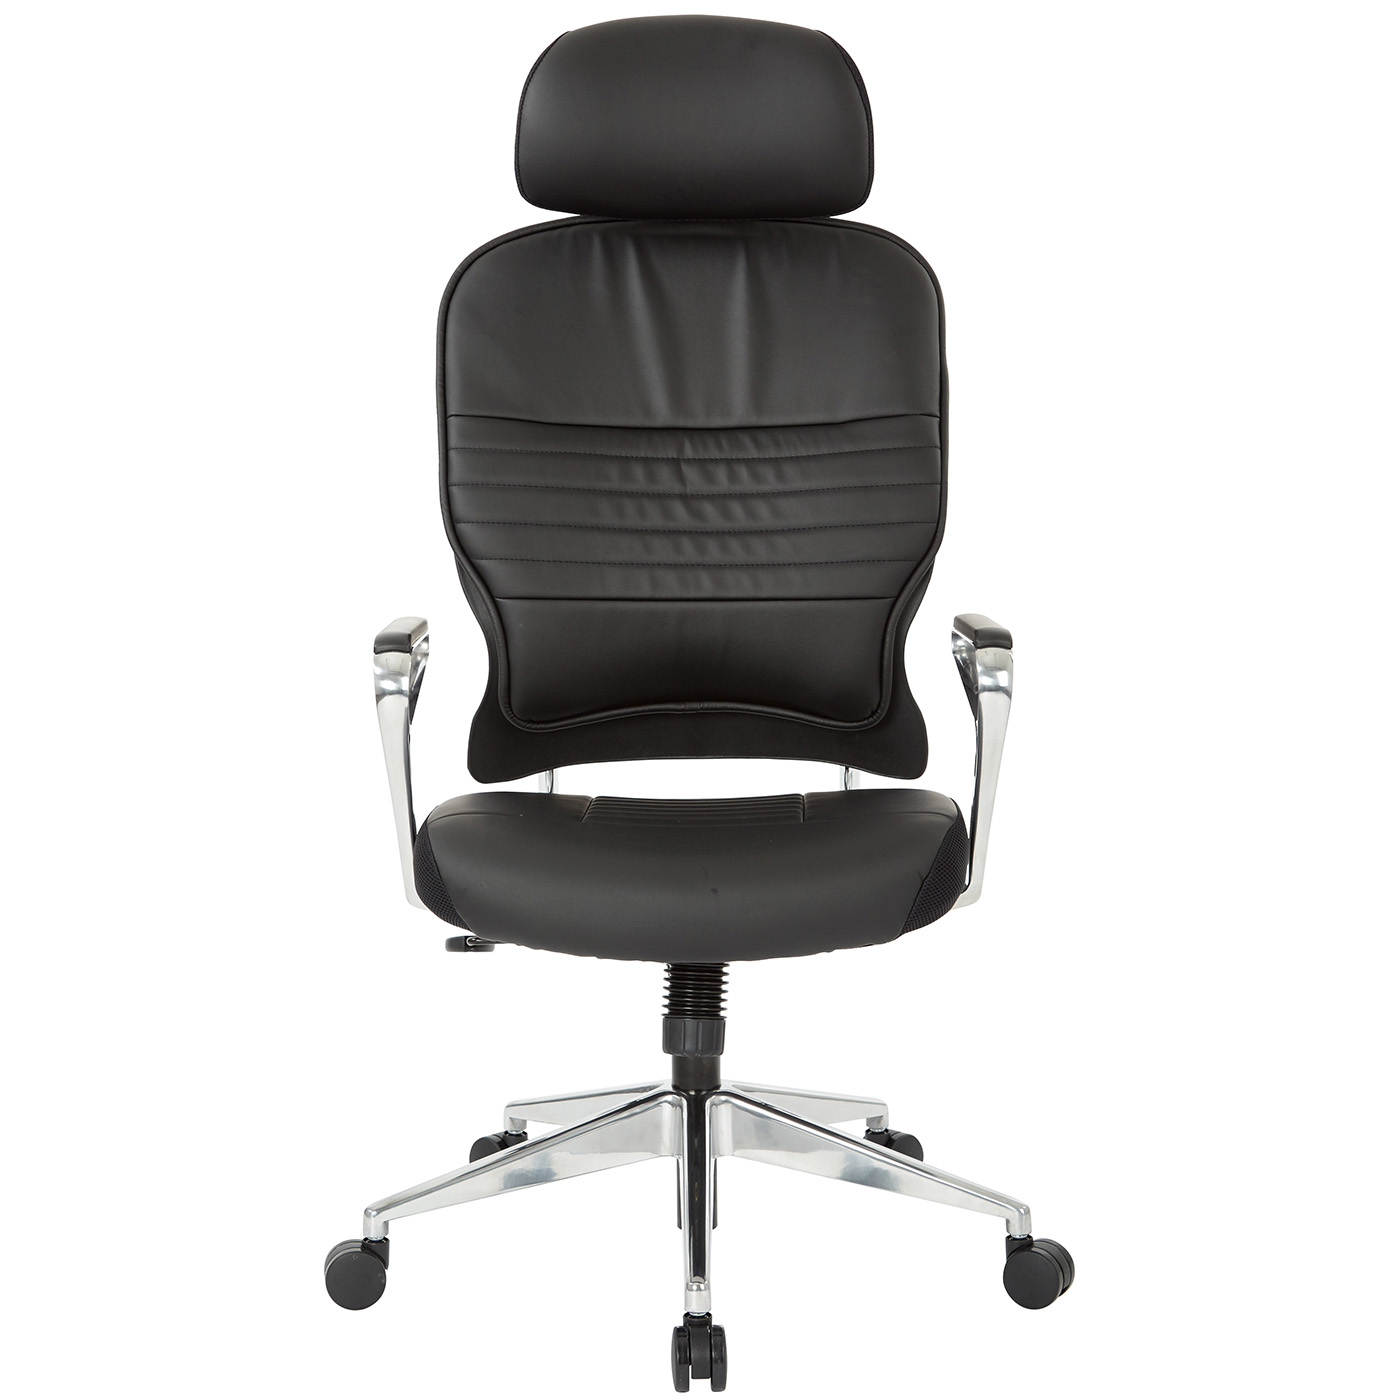 Remarkable Office Star Bonded Leather Managers Chair With Headrest In Black 32 E33P91A7Hl Theyellowbook Wood Chair Design Ideas Theyellowbookinfo